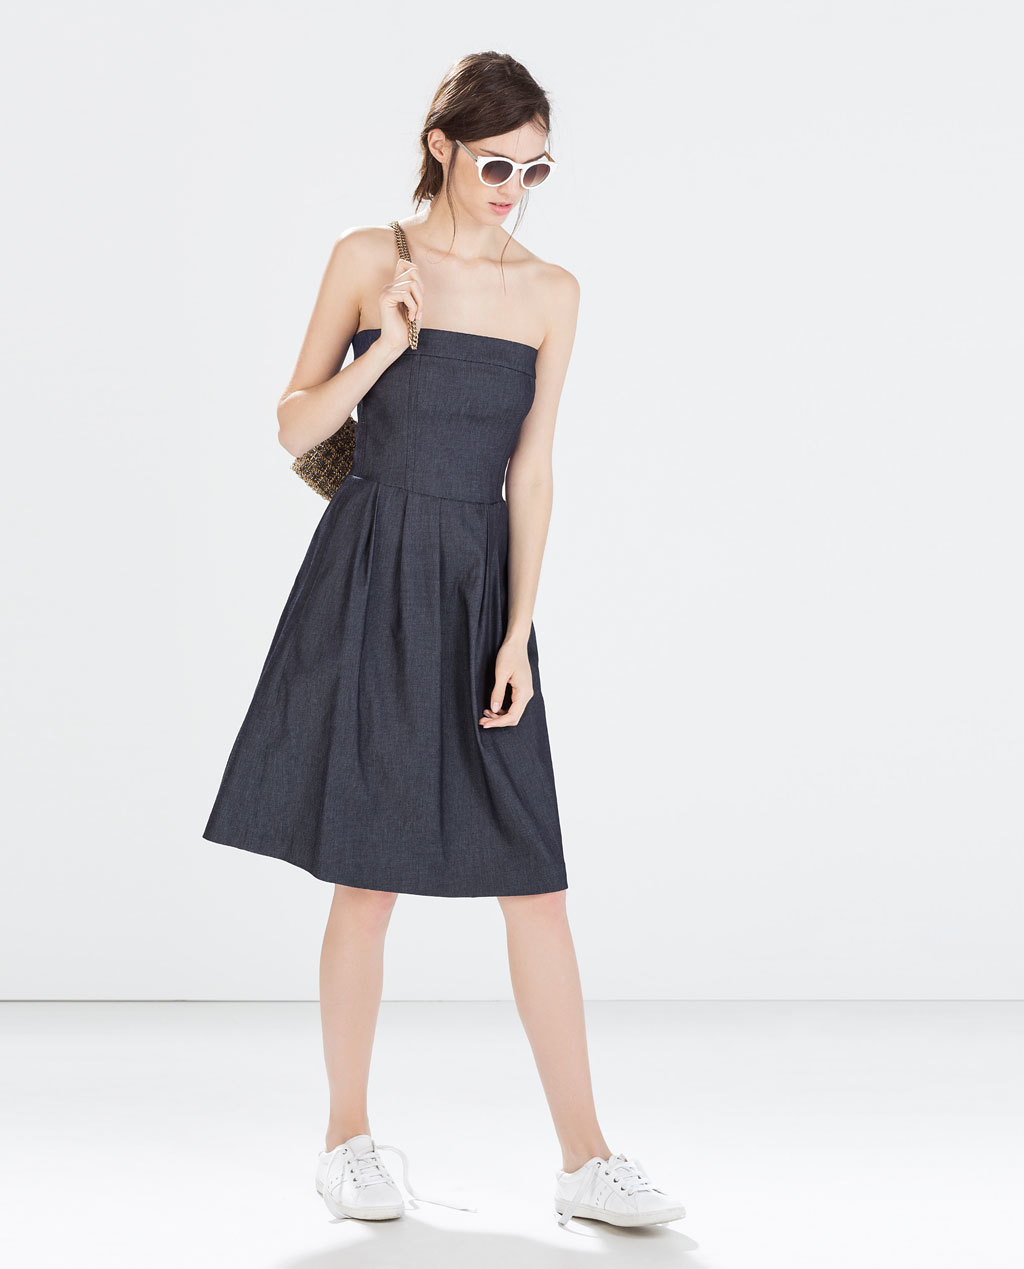 Denim Dress - neckline: strapless (straight/sweetheart); pattern: plain; style: prom dress; sleeve style: strapless; predominant colour: black; occasions: casual, evening, holiday; length: on the knee; fit: fitted at waist & bust; fibres: cotton - stretch; hip detail: adds bulk at the hips; sleeve length: sleeveless; texture group: denim; pattern type: fabric; season: s/s 2014